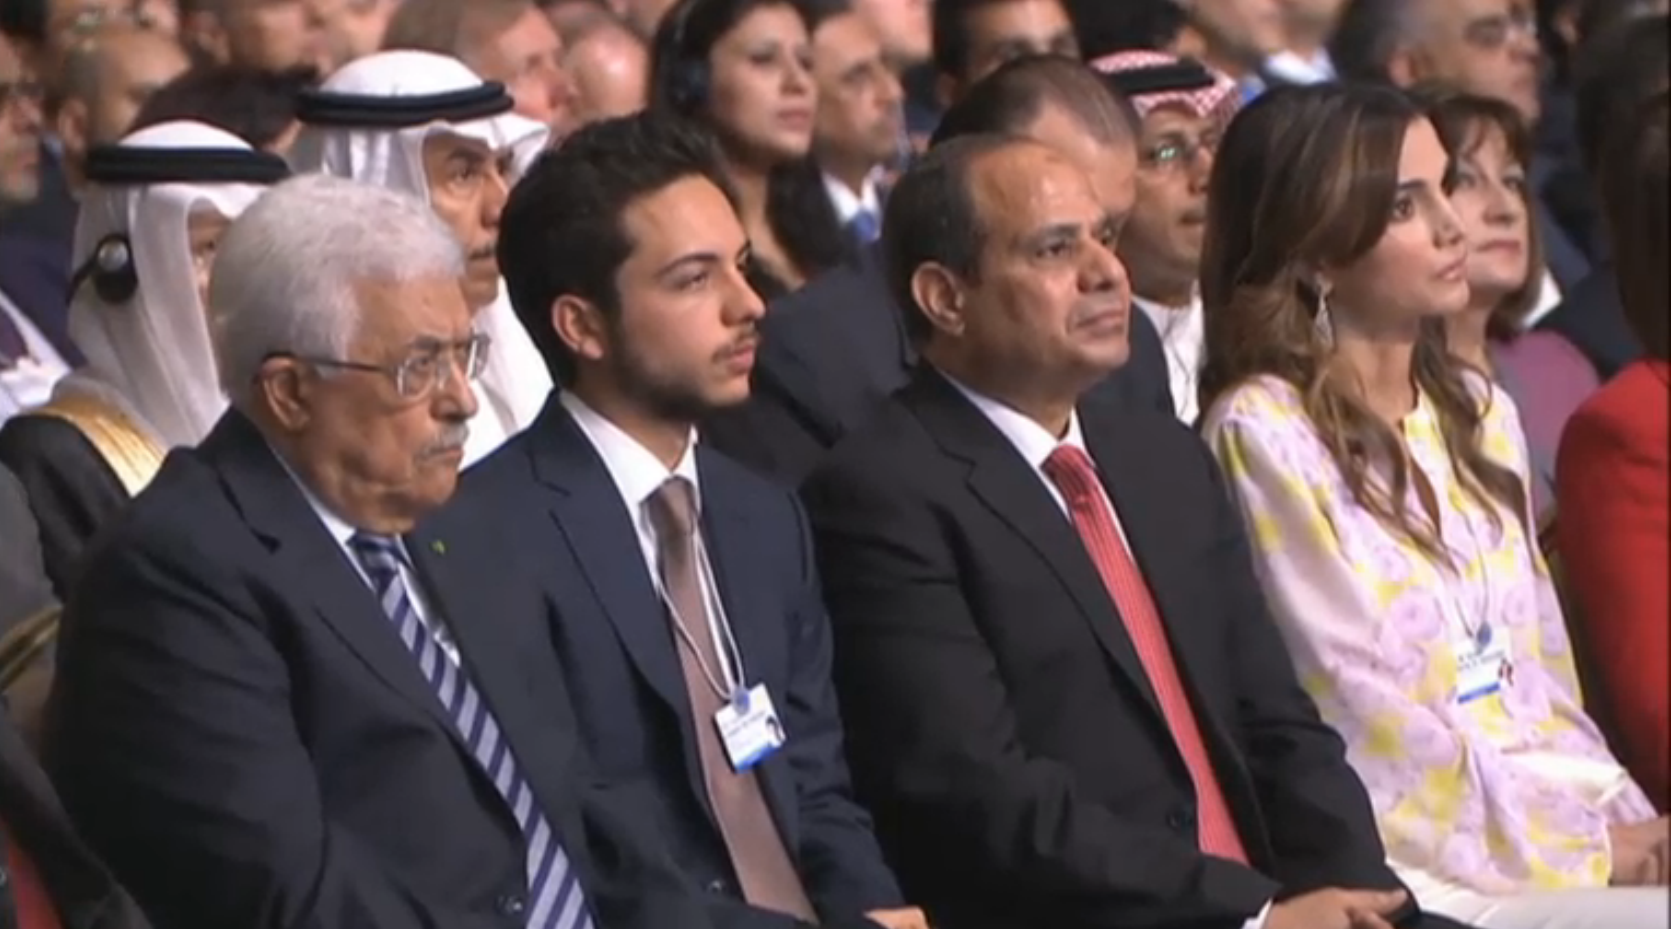 Abdel Fattah El Sisi (second from right), the Egyptian president, and Palestinian political leader Mahmoud Abbas (left) attended the opening of the WEF.